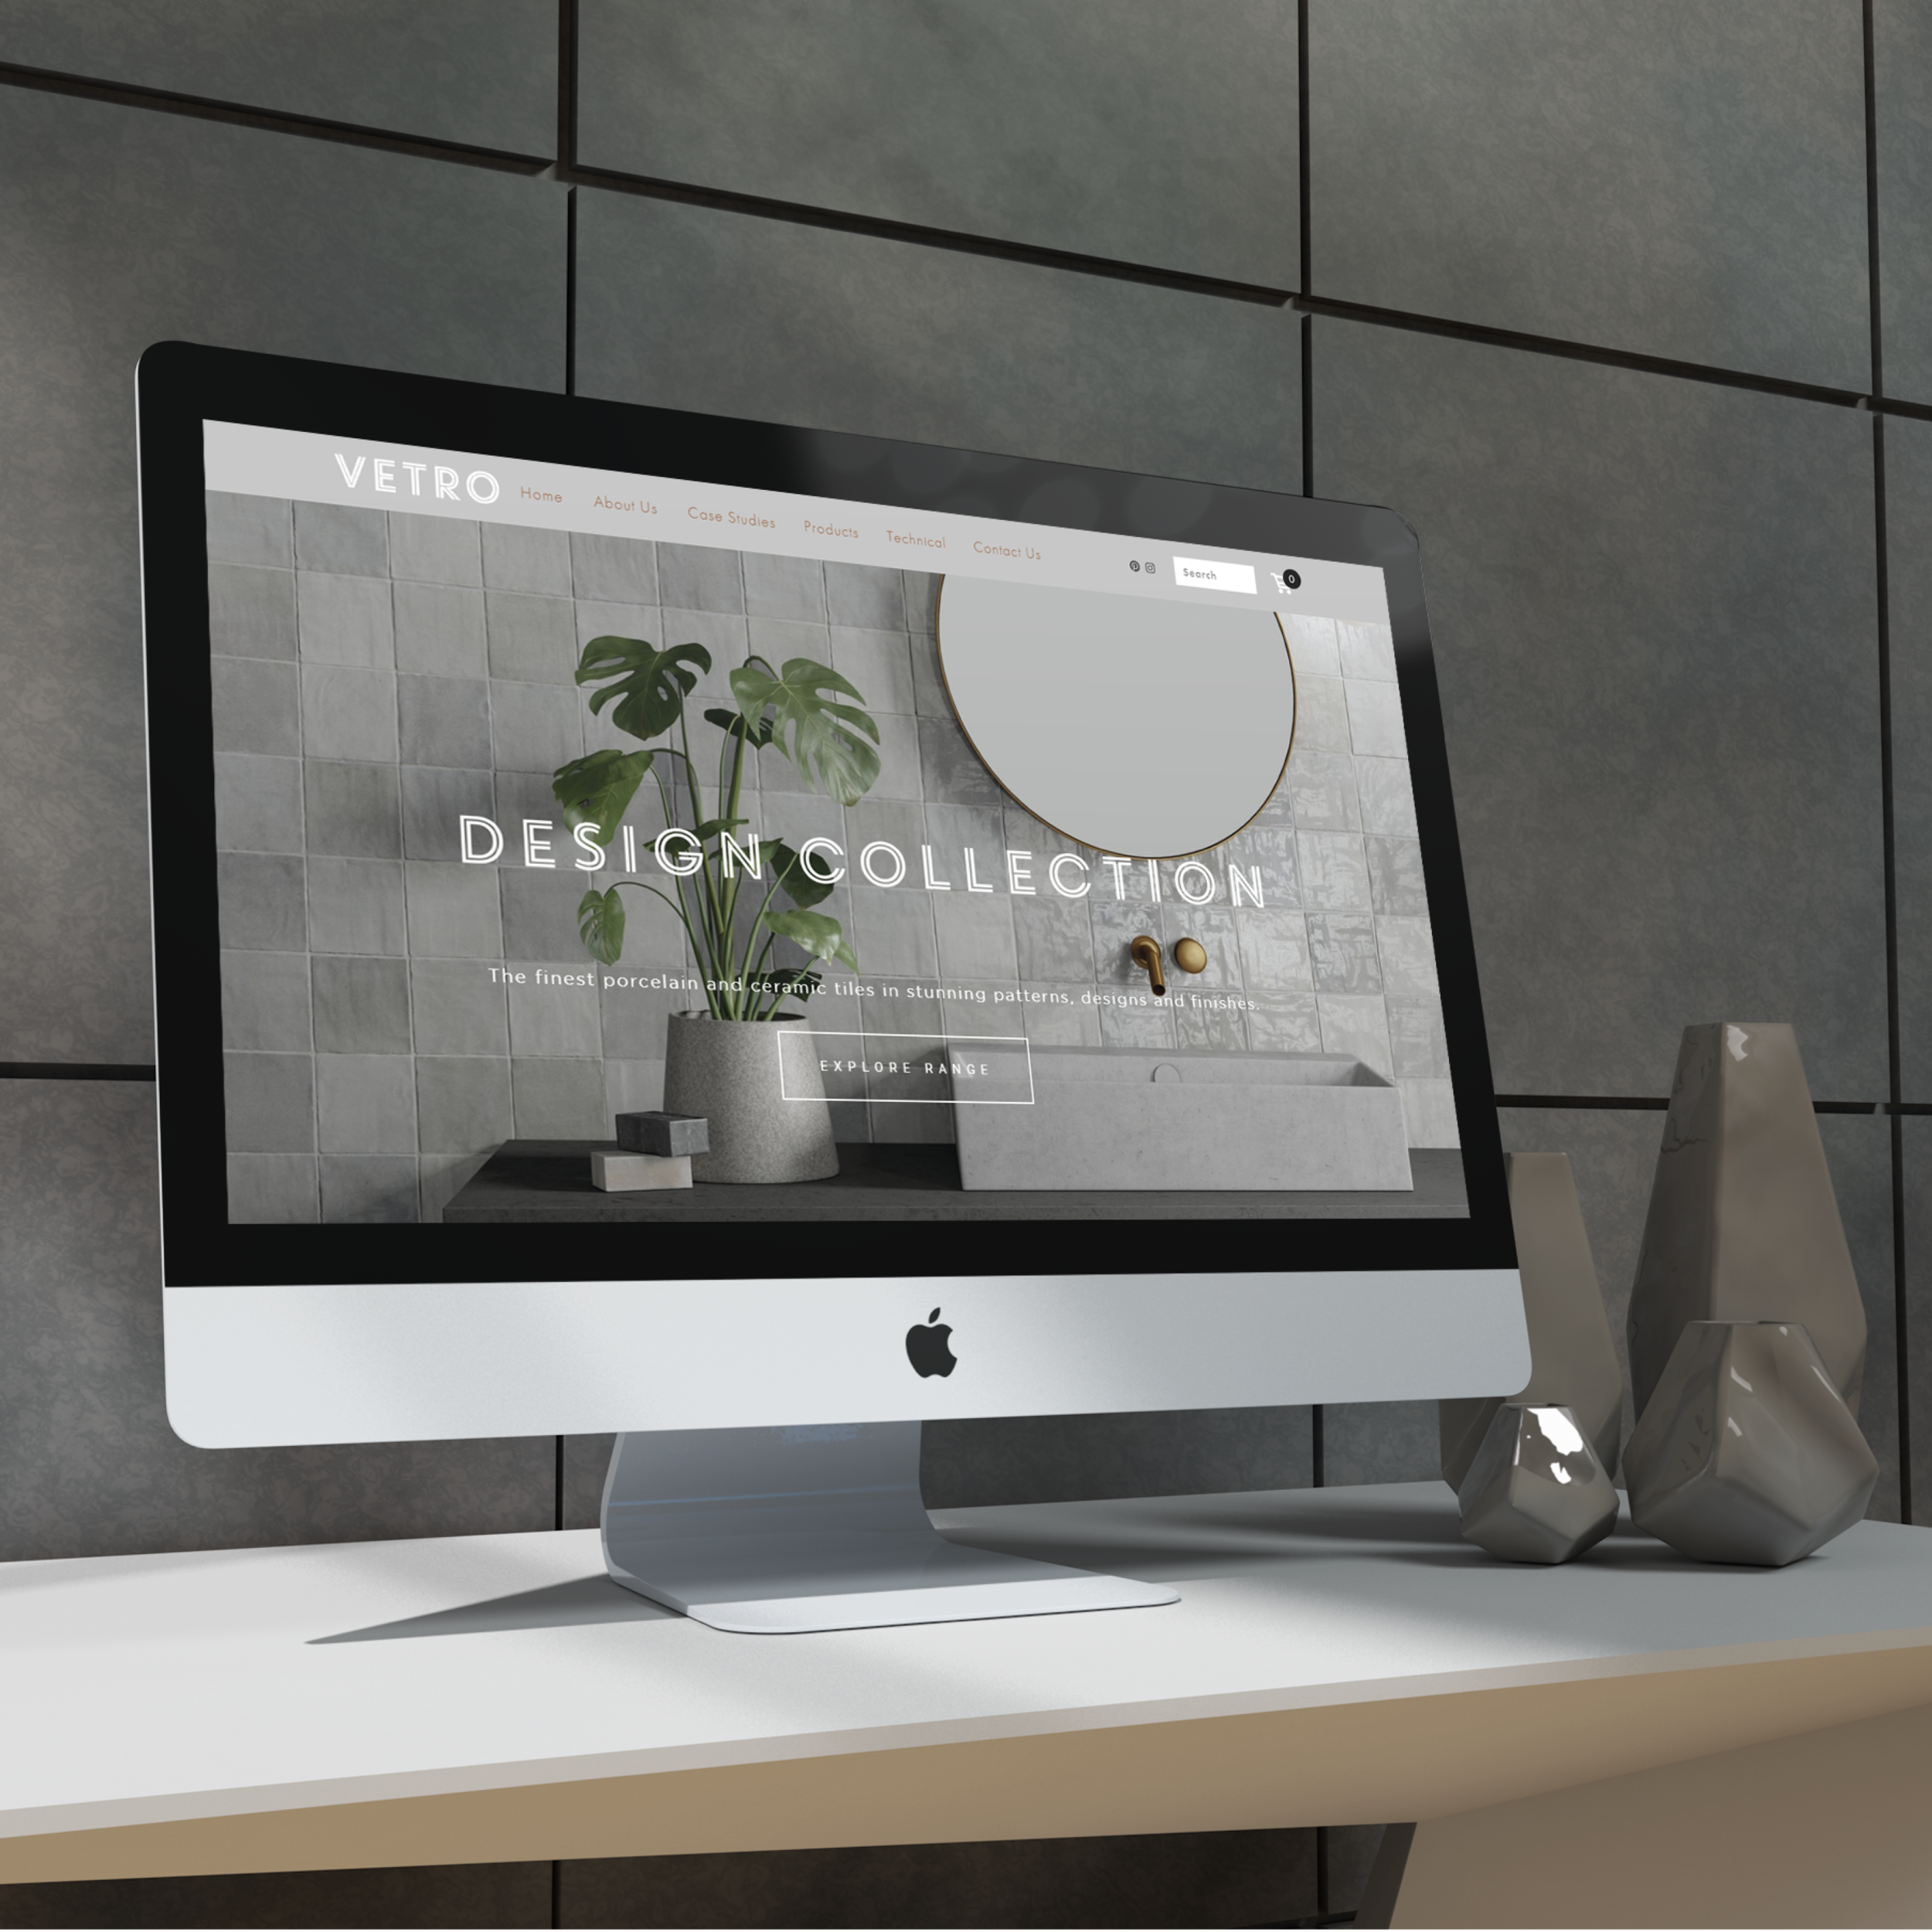 Design Collection Insta-01.png